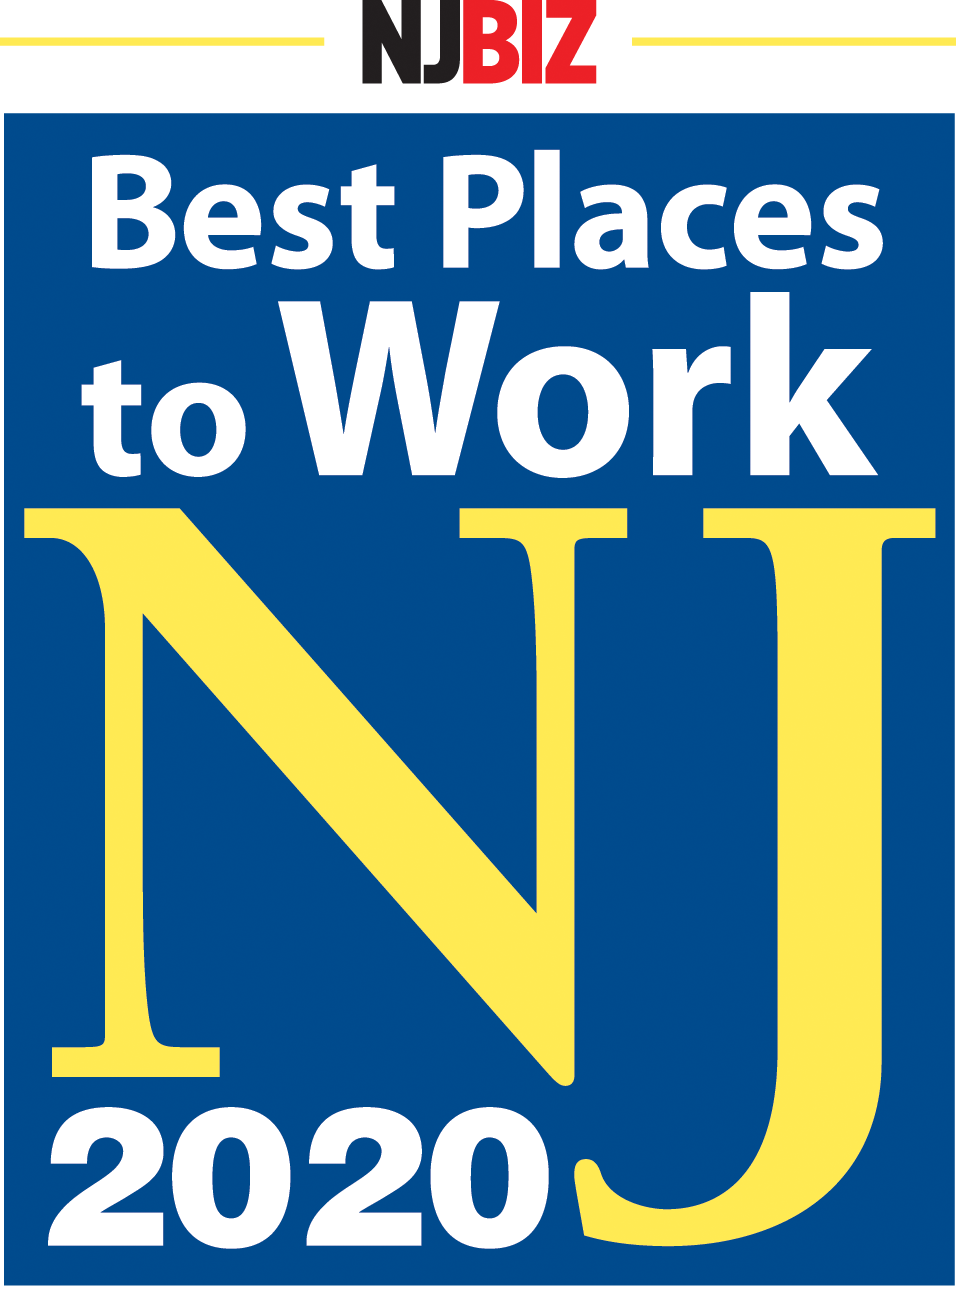 Best Places to Work NJ 2020 logo